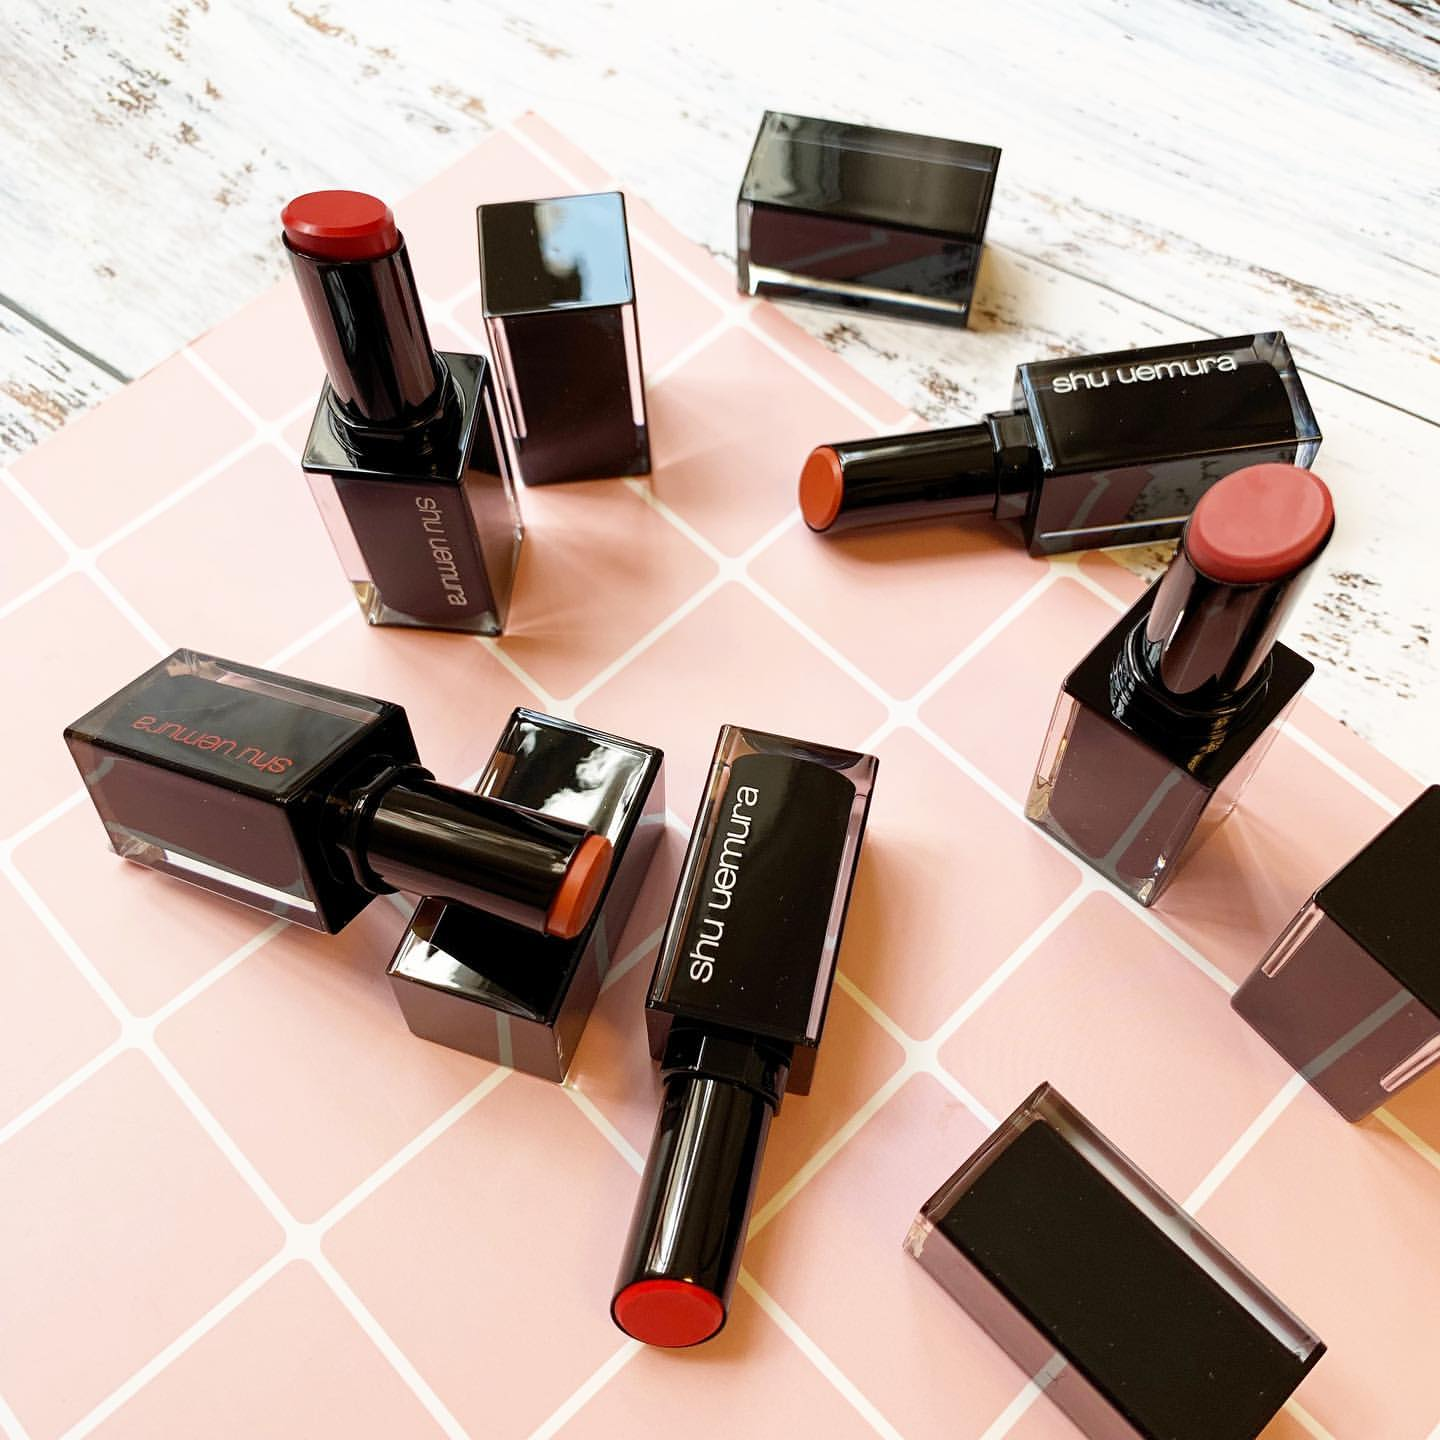 Son Shu Uemura Rouge Unlimited Amplified 2019